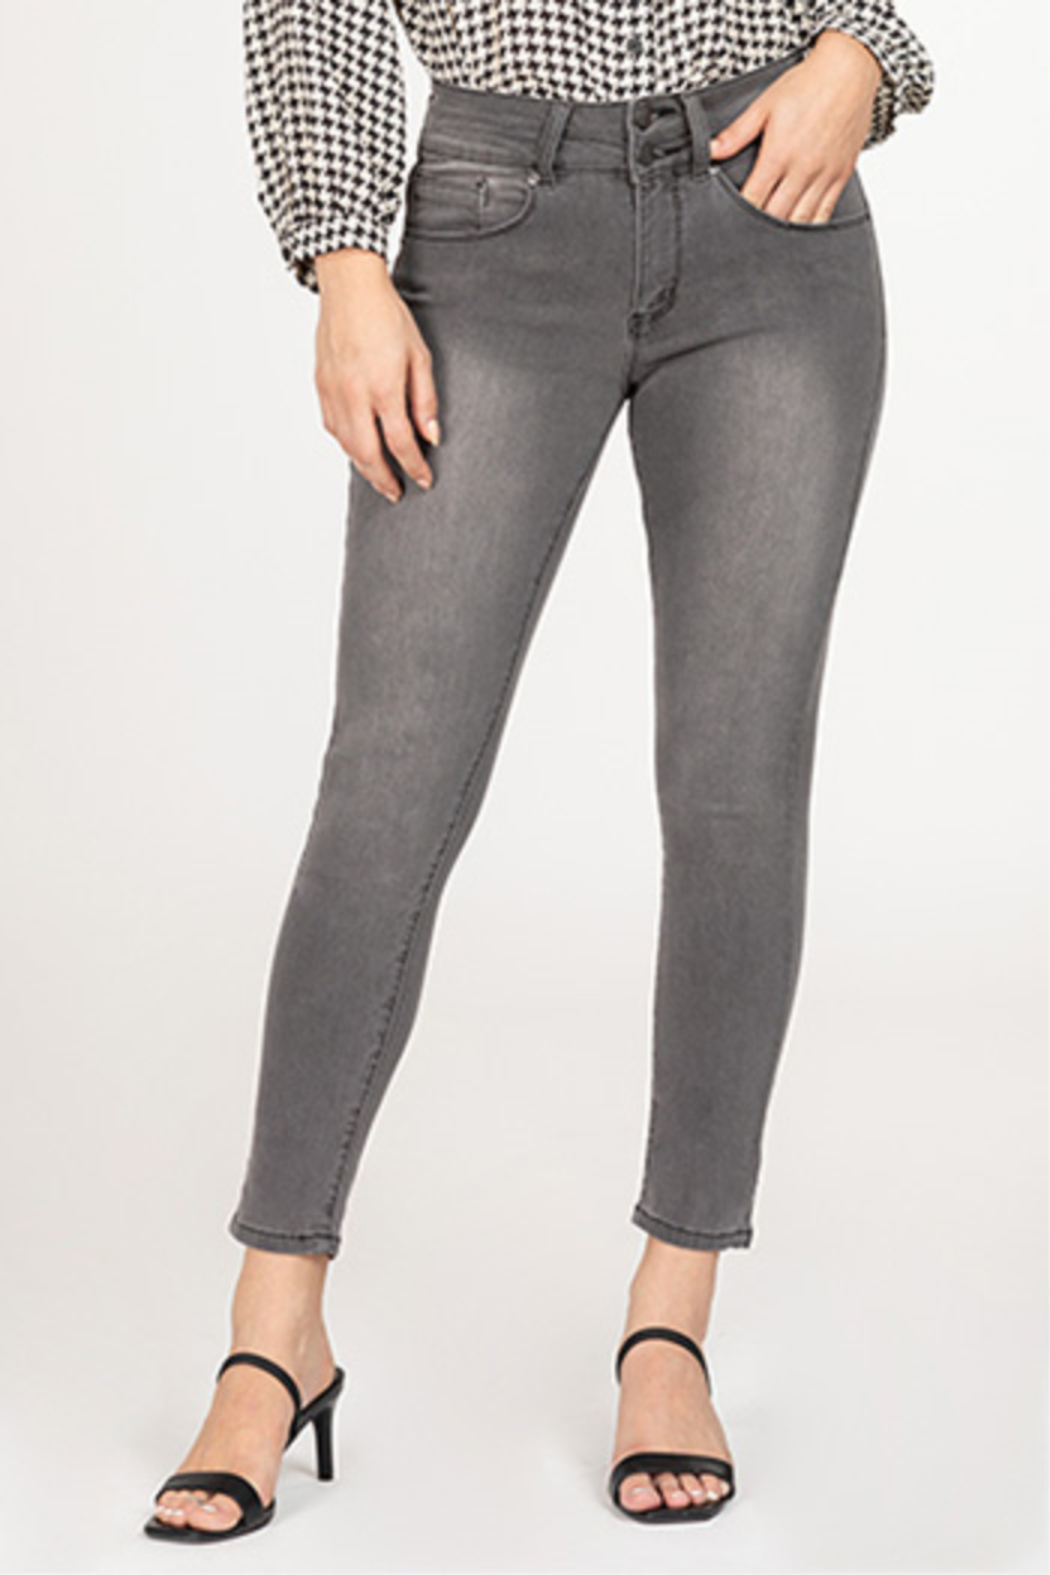 Lyn -Maree's 2 Button High Rise Ankle Jean - Main Image